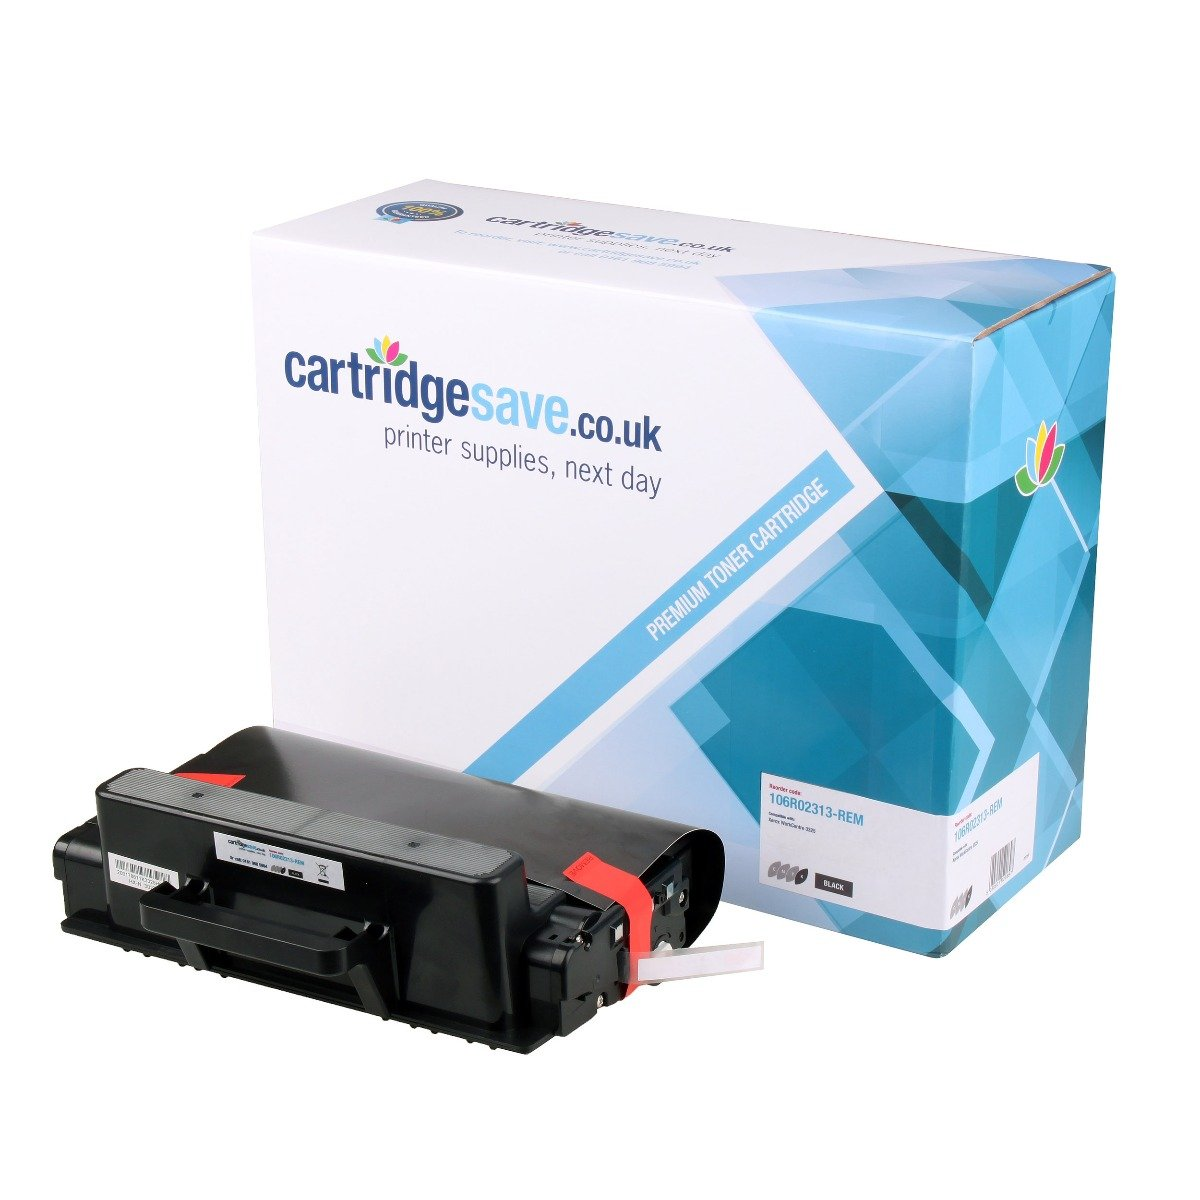 Compatible Black High Capacity Xerox 106R02313 Toner Cartridge - (106R02313)